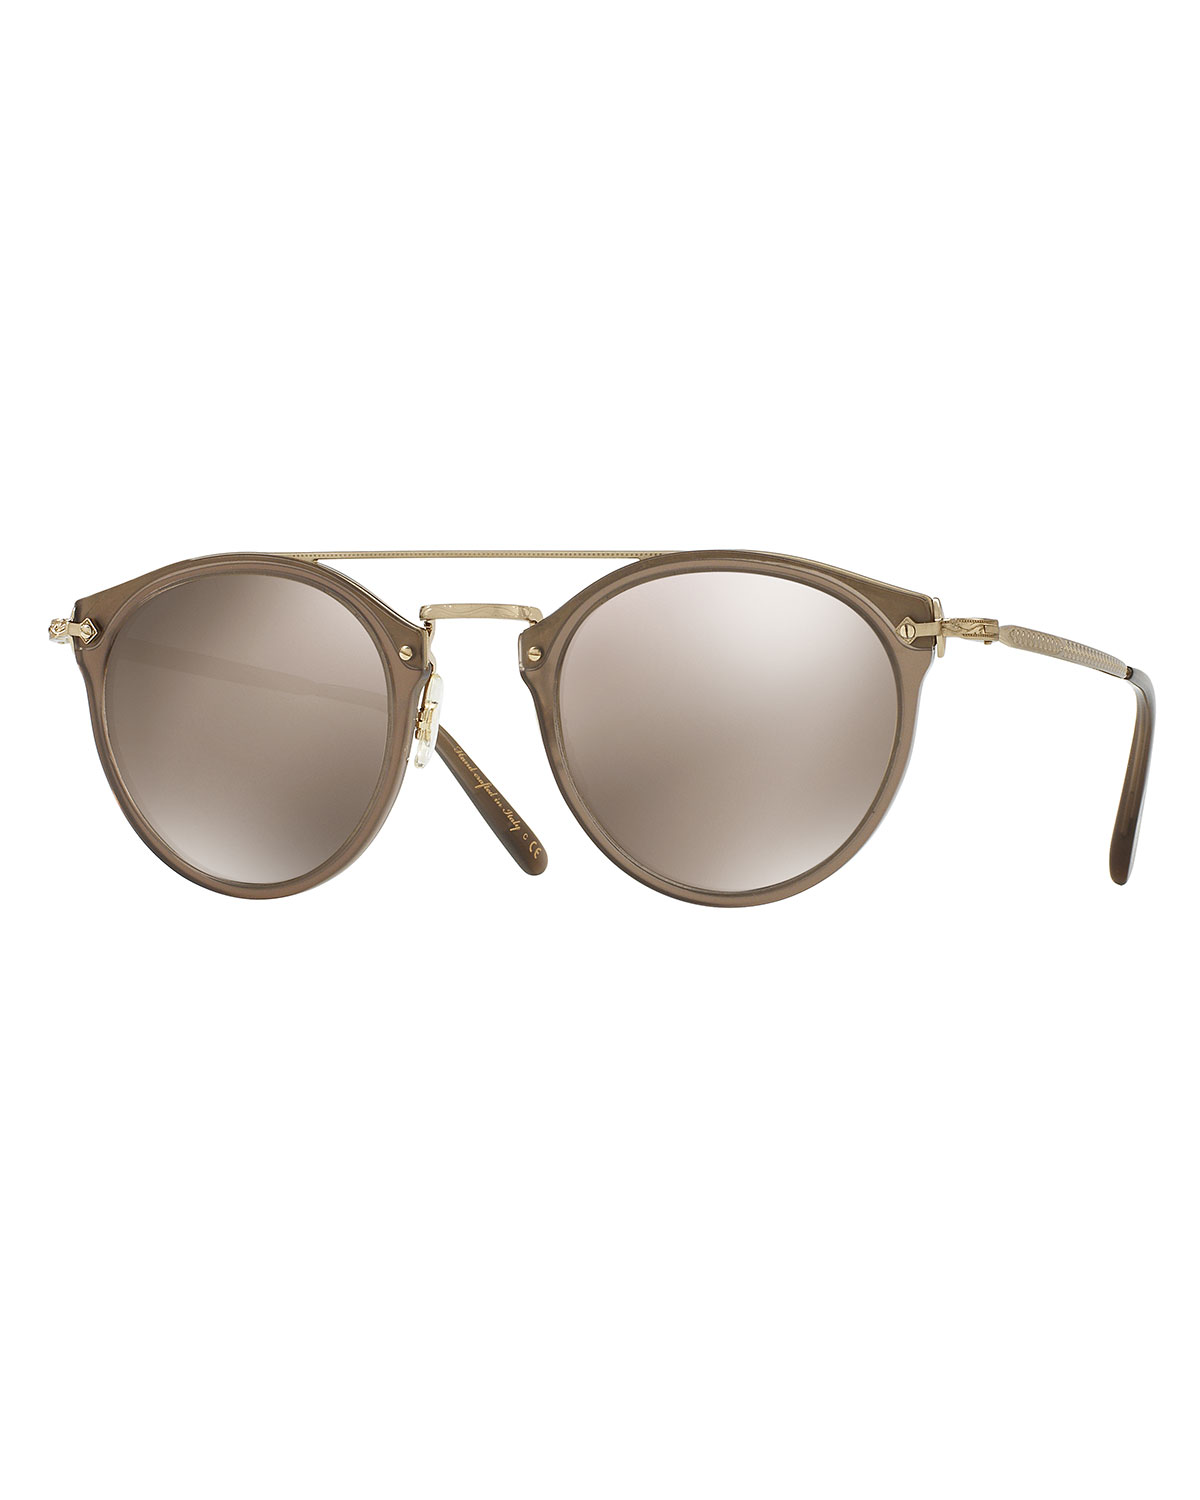 e708487c4f Oliver Peoples Remick Mirrored Brow-Bar Sunglasses